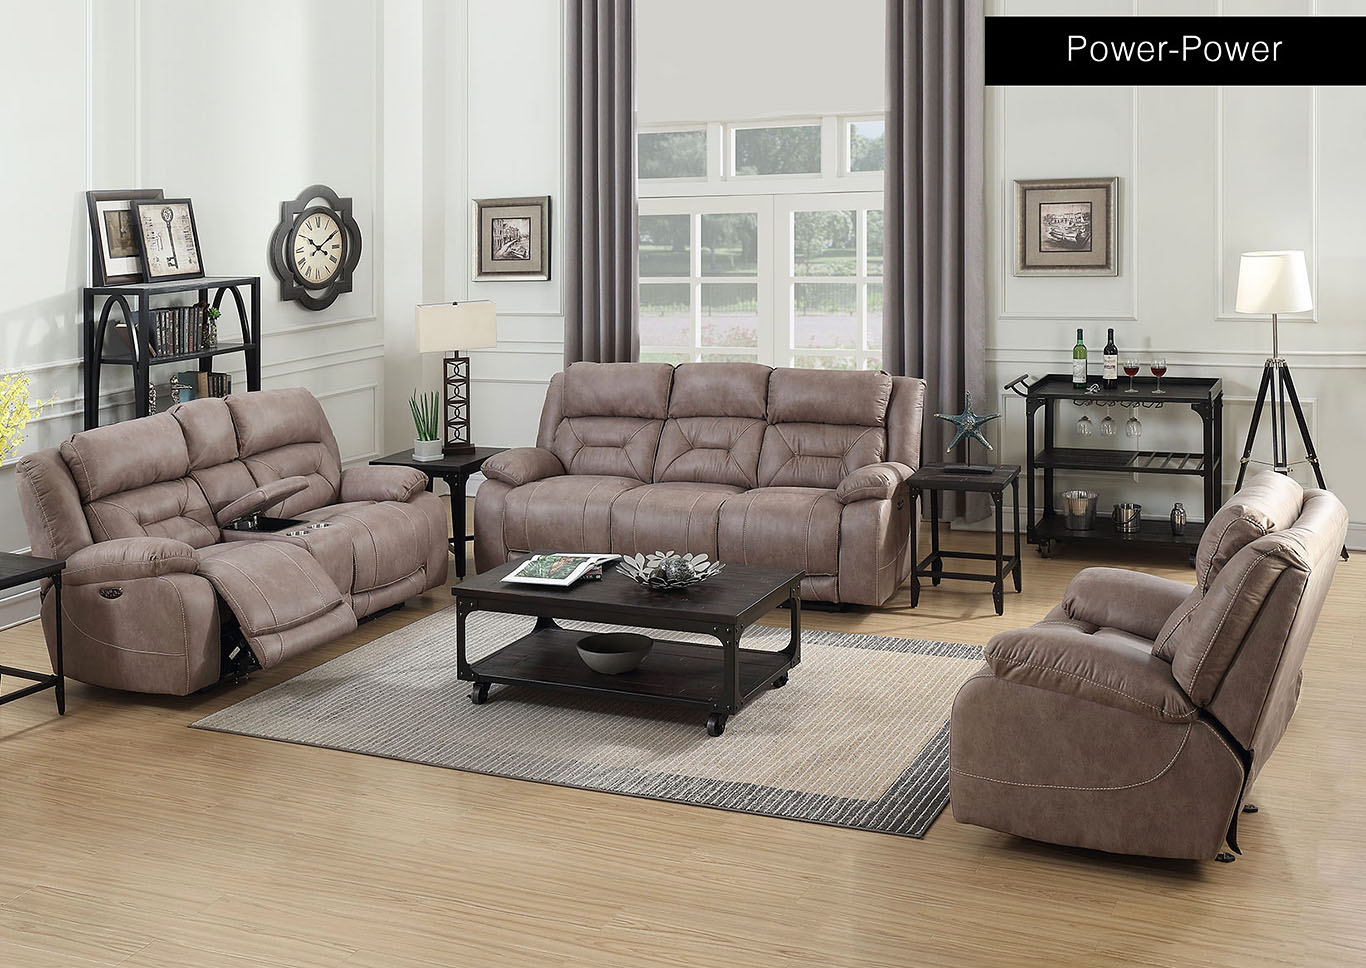 Aria Desert Sand Power-2 Recliner Sofa, Armchair & Loveseat,Steve Silver